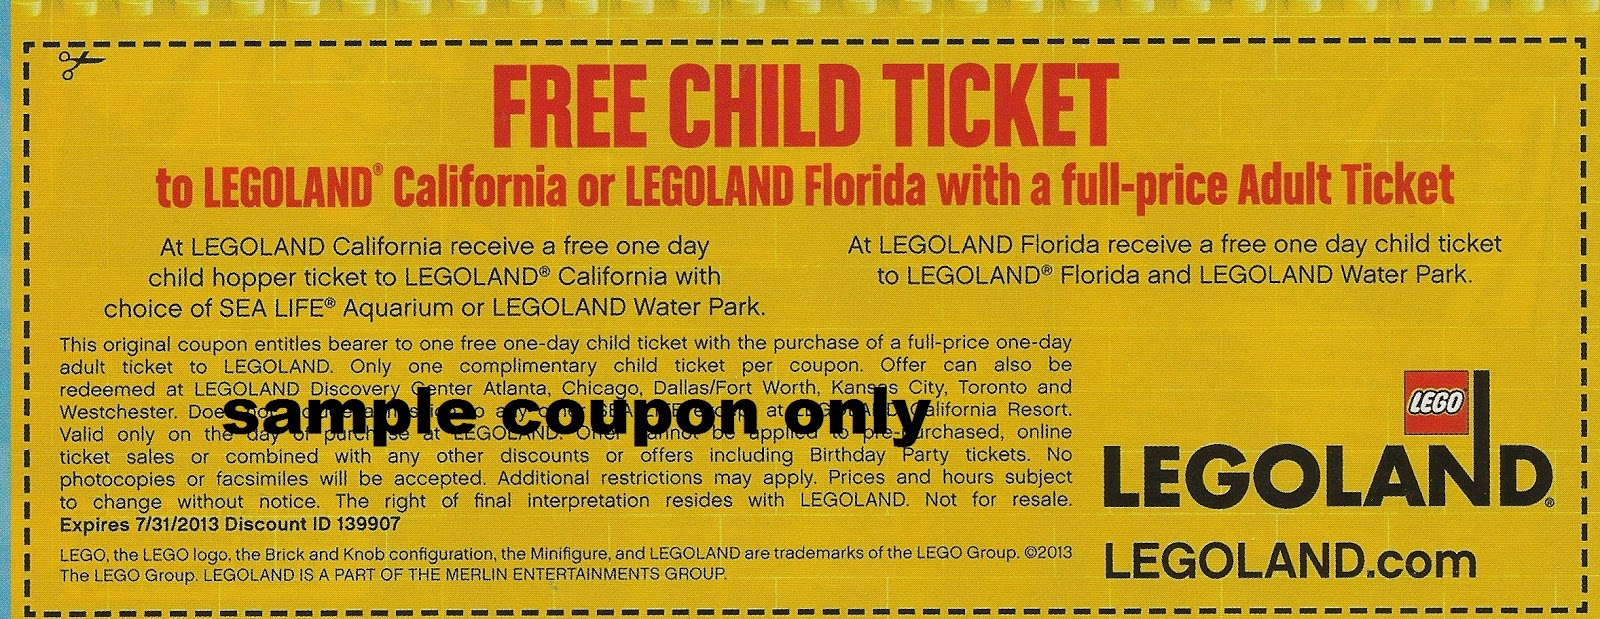 Like Legoland coupons? Try these...